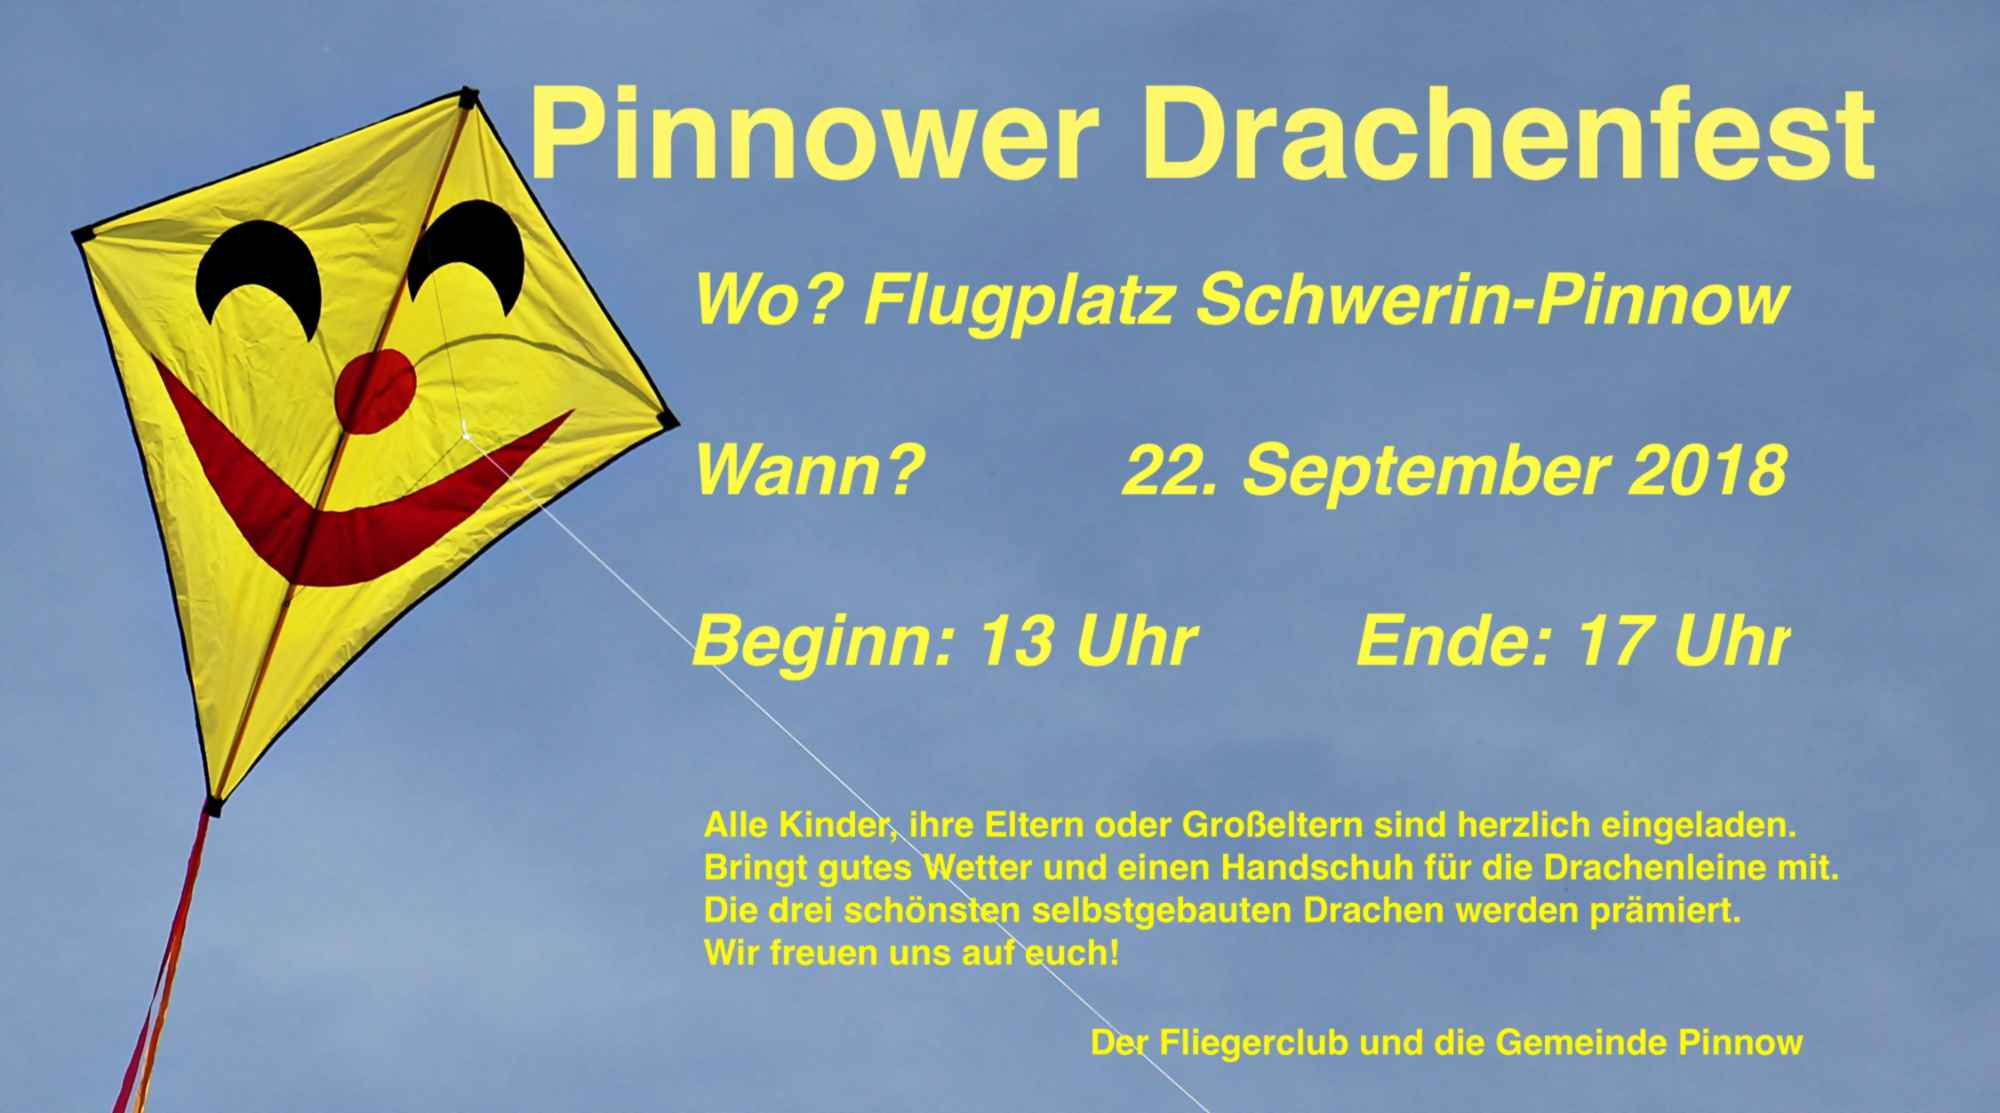 Drachenfest am 22. September